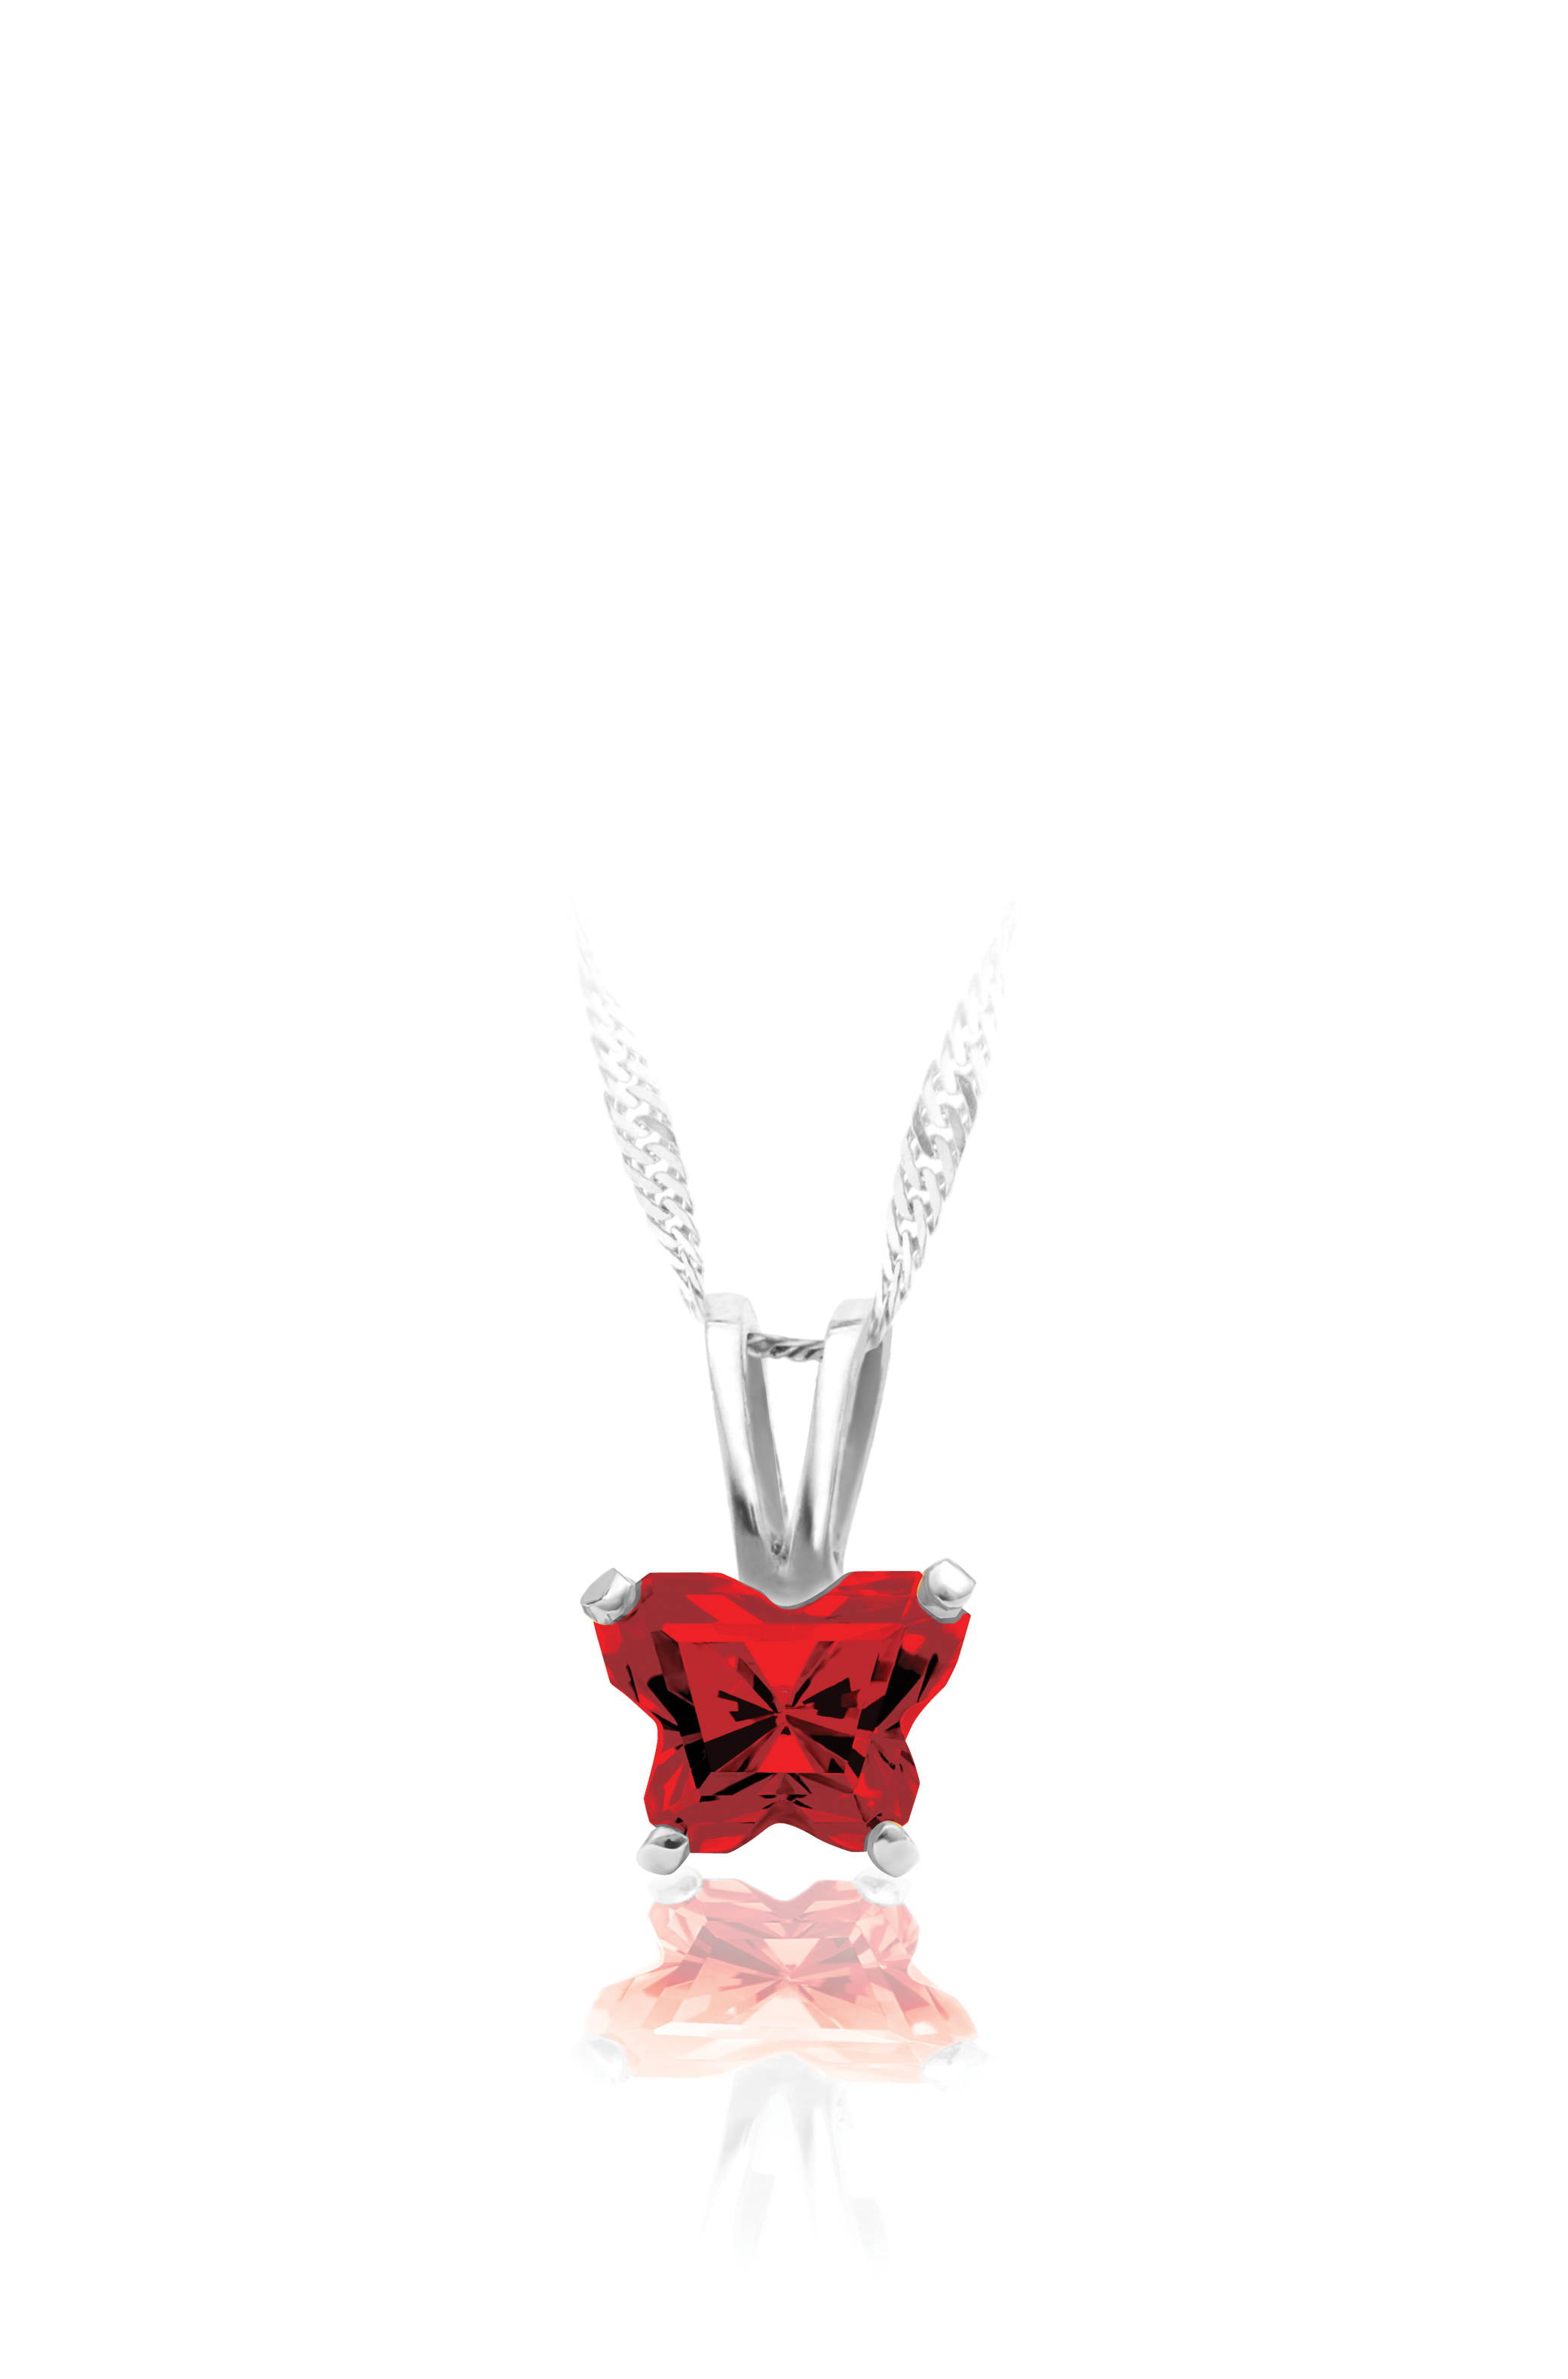 pendant for babies in sterling silver with red cubic zirconia (month of January) - Chain included